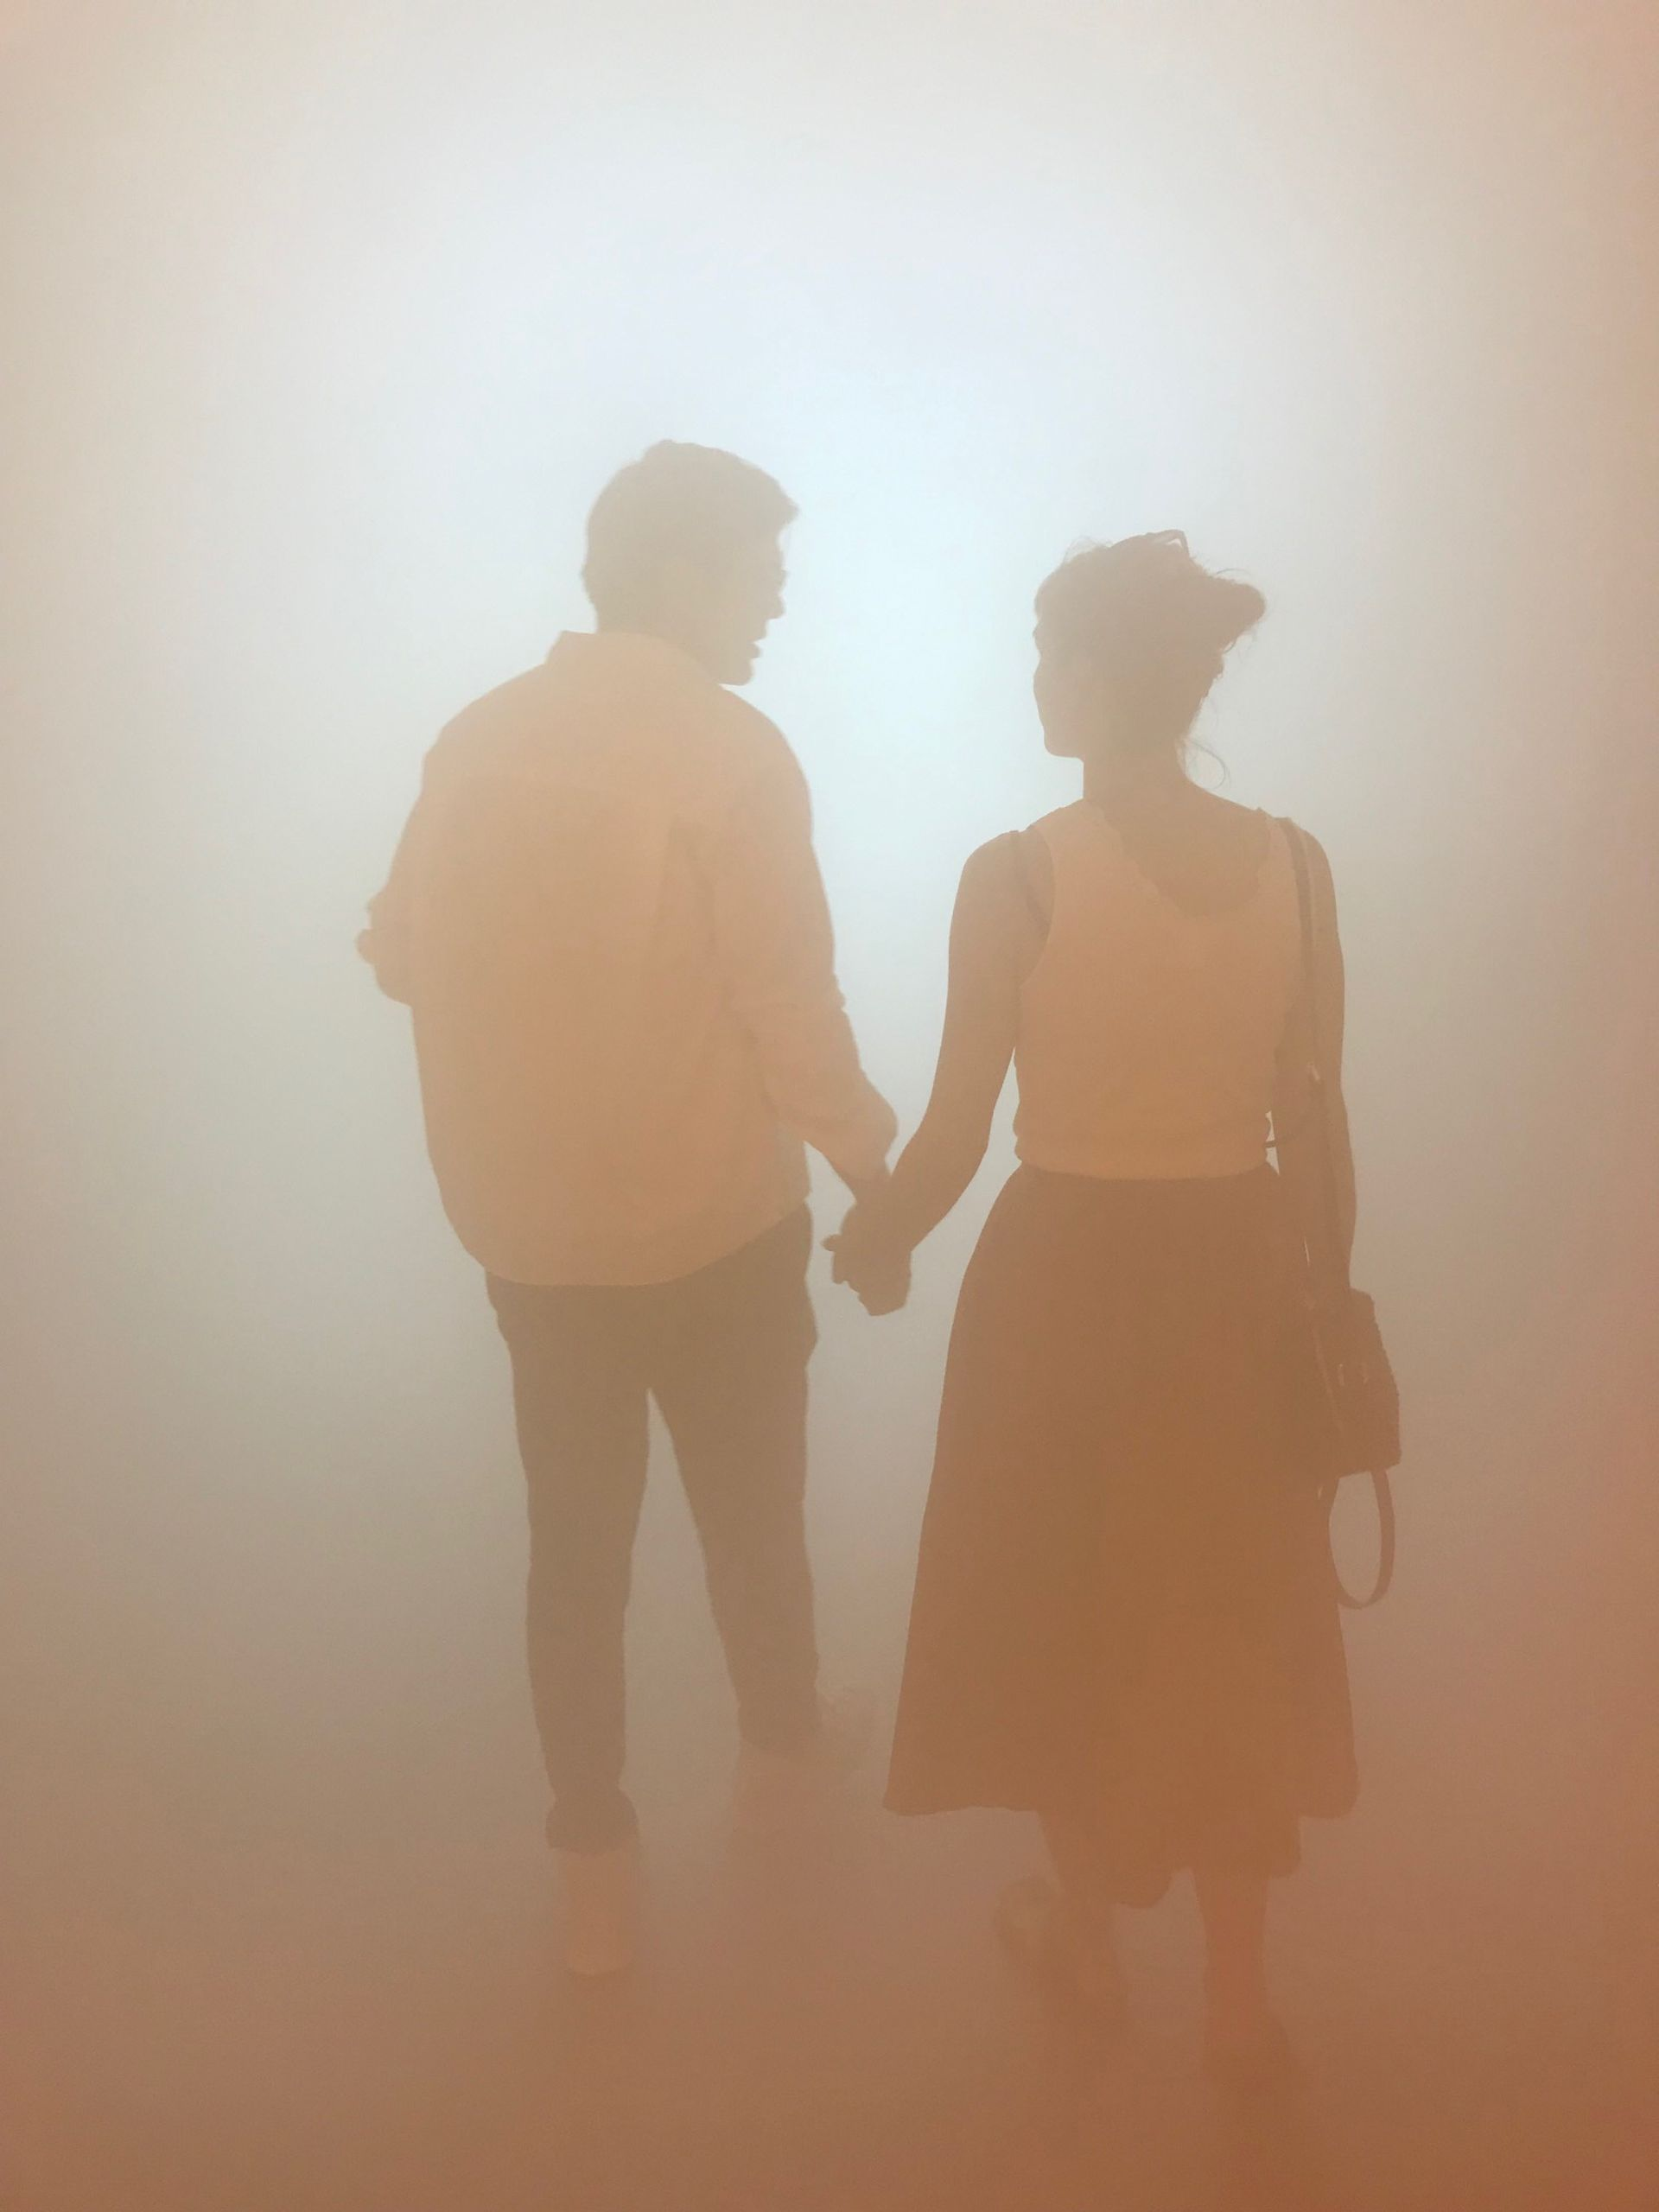 Olafur Eliasson: In Real Life is on show at Tate Modern until 5 January © Eddy Frankel